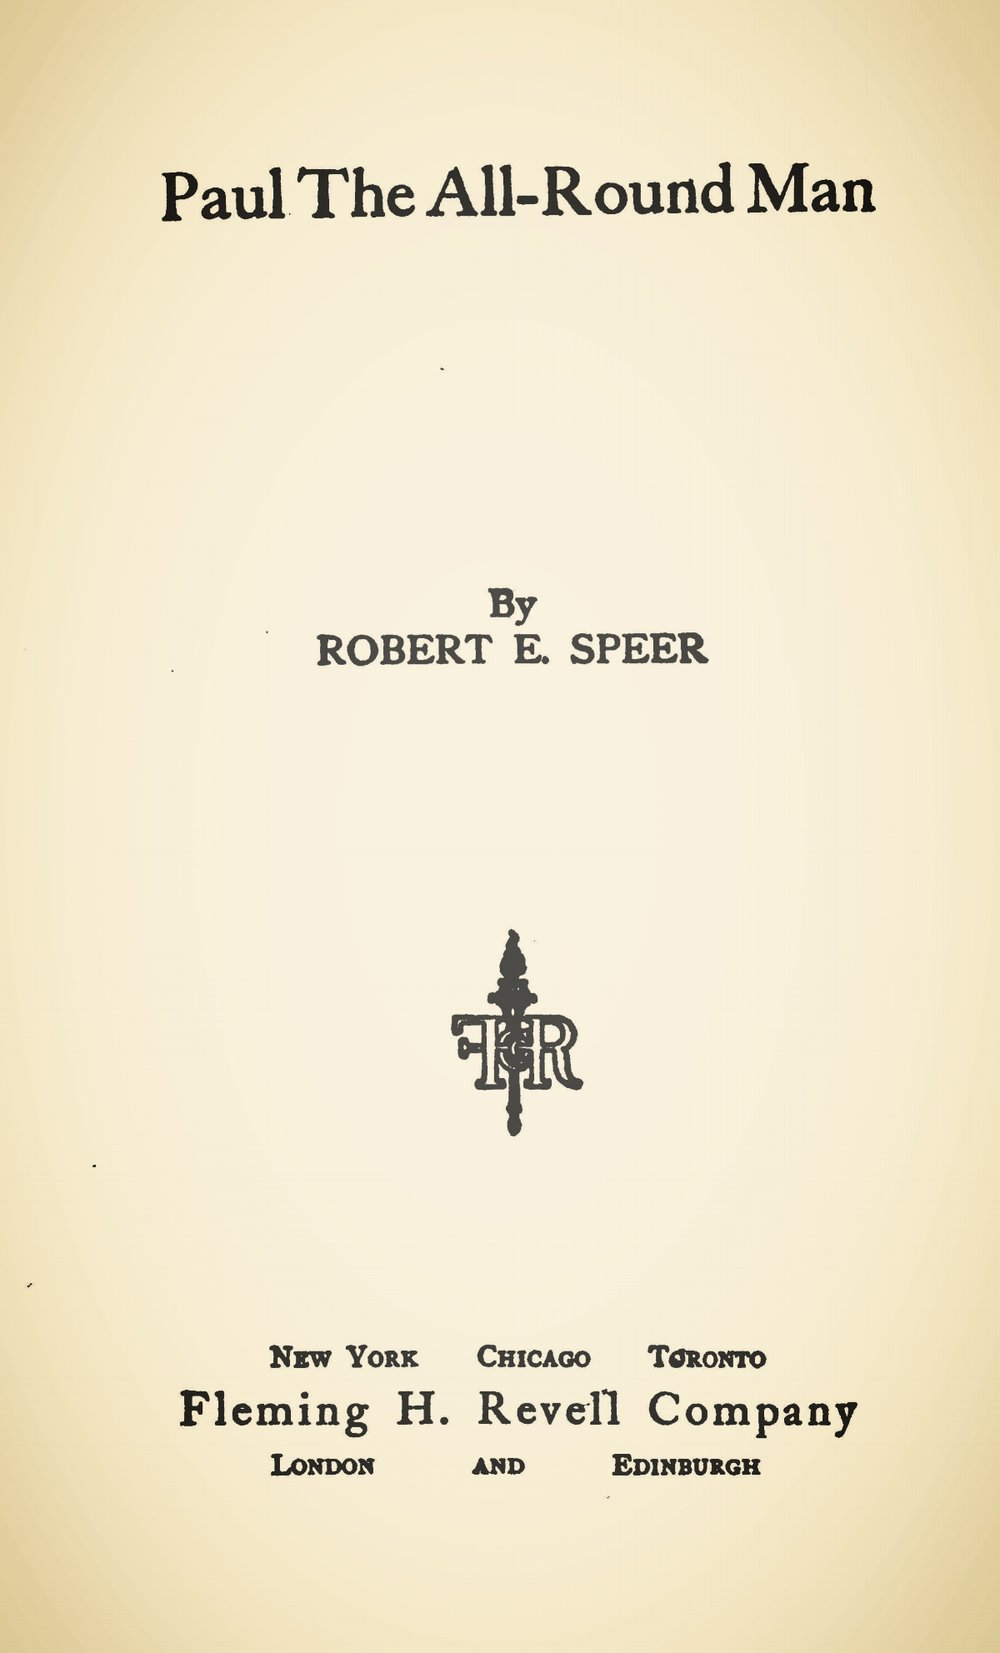 Speer, Robert Elliott, Paul, the All-Round Man Title Page.jpg